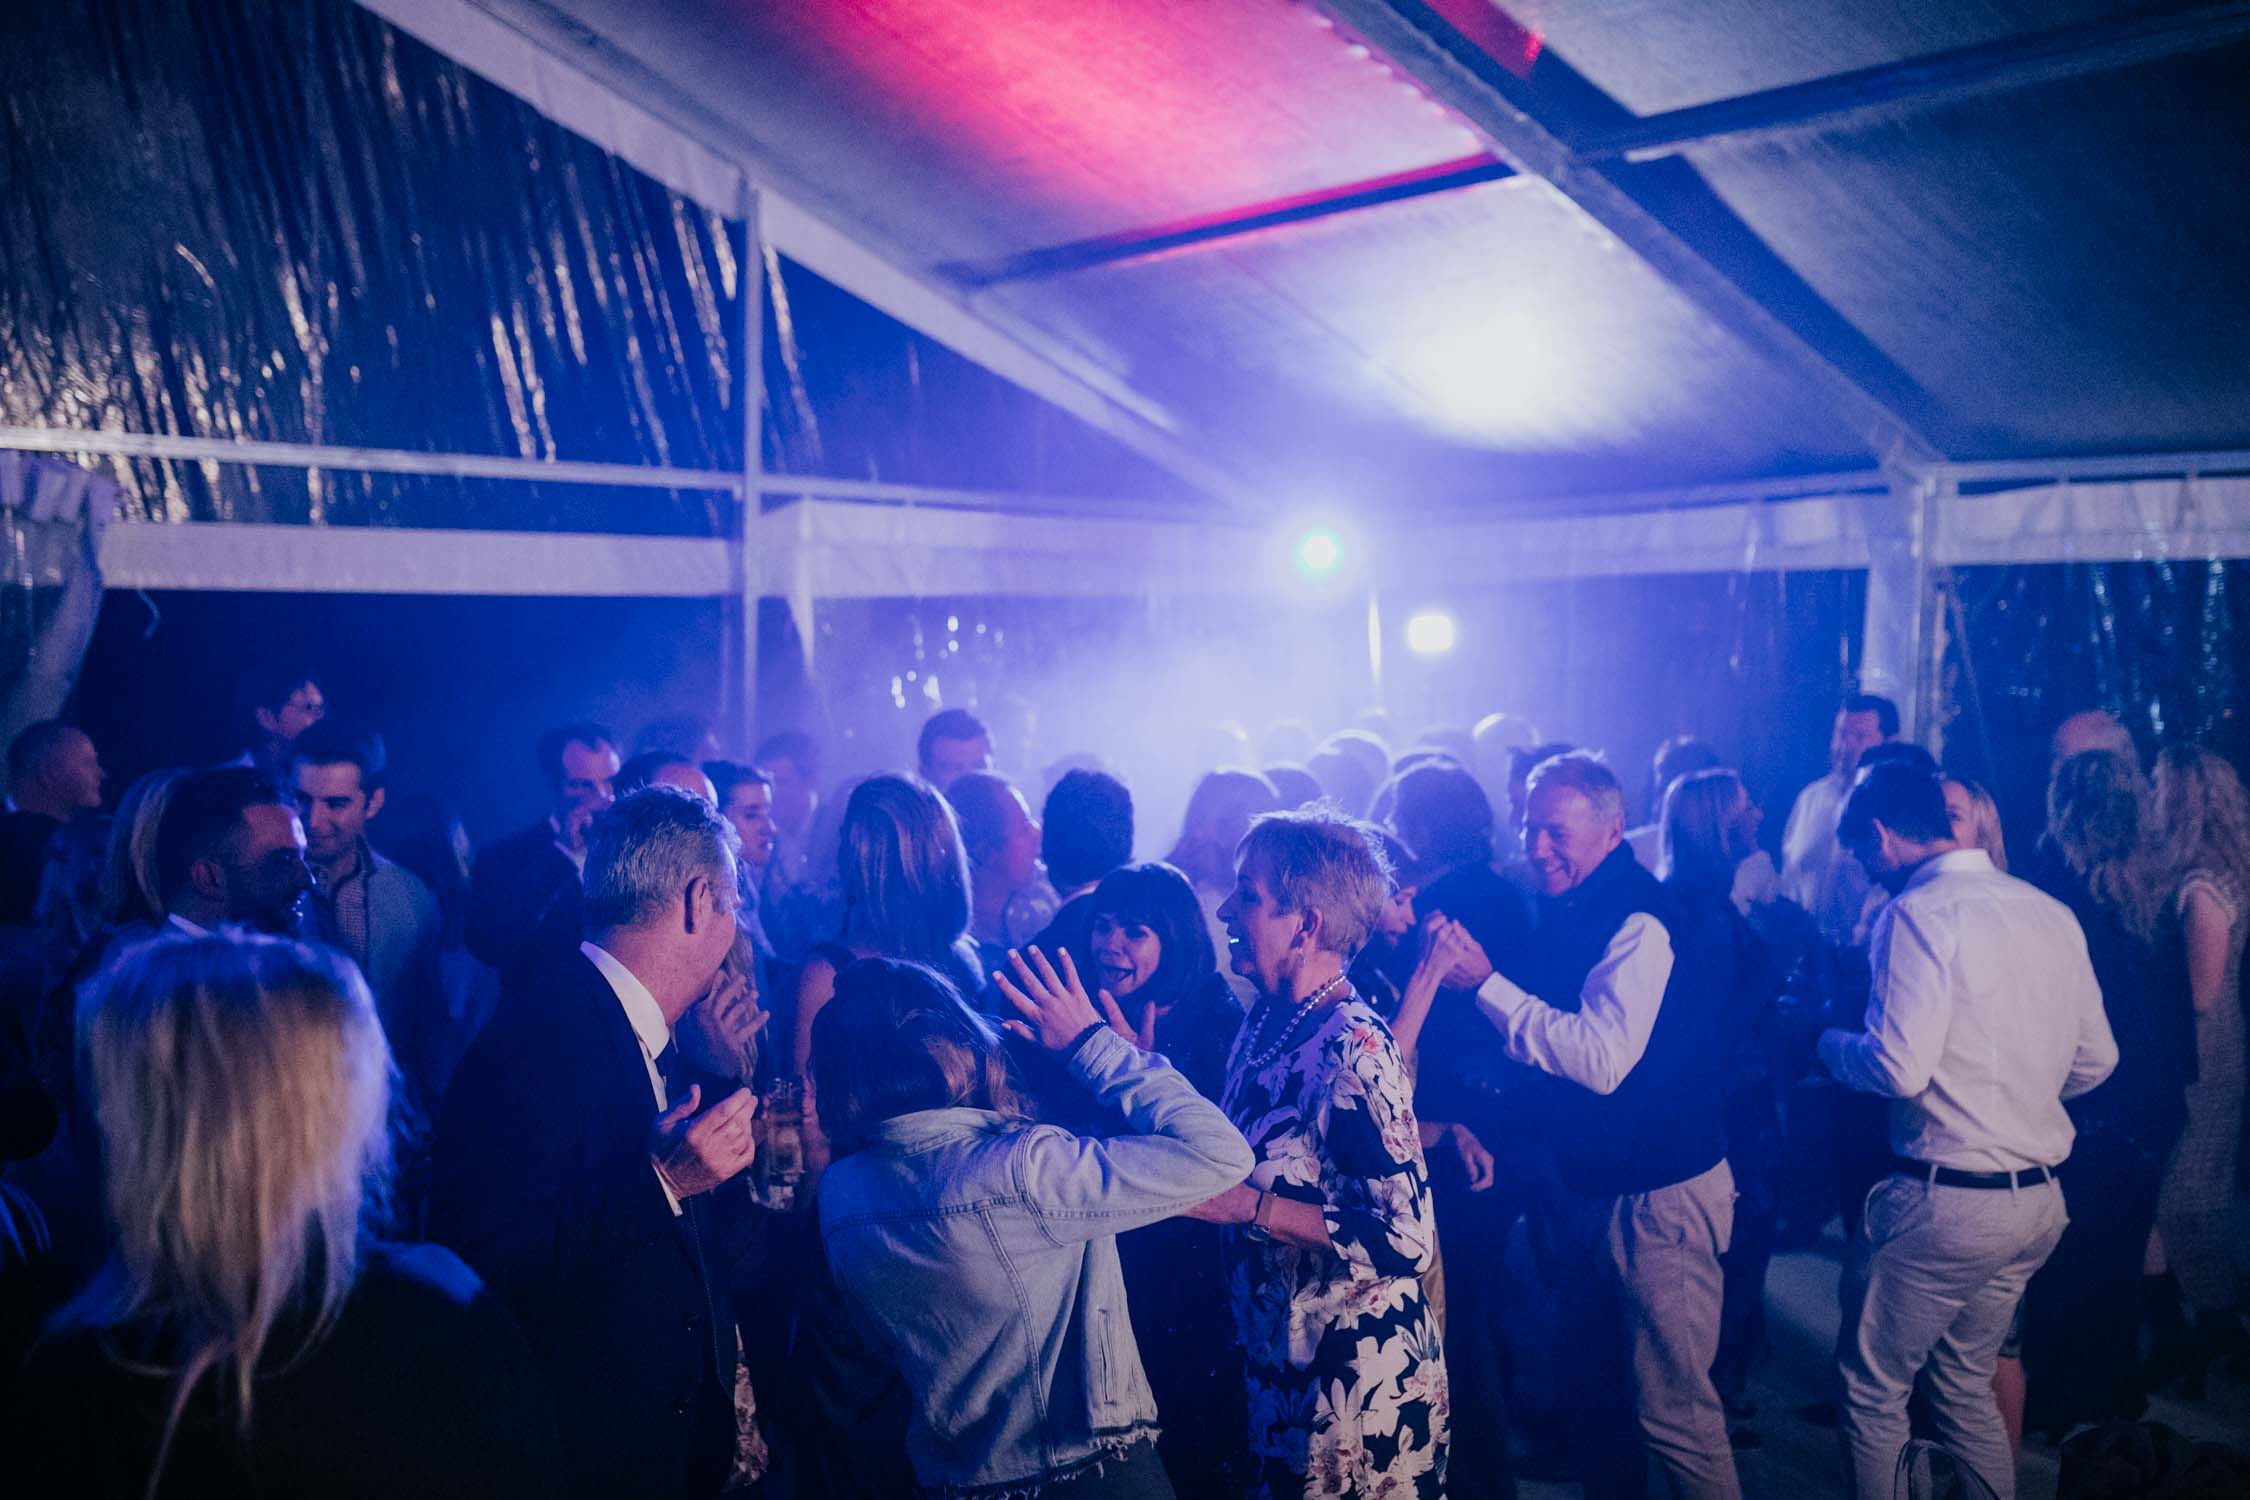 Fun photographs of guest dancing and having the best time at a wedding reception with blue and pink lights